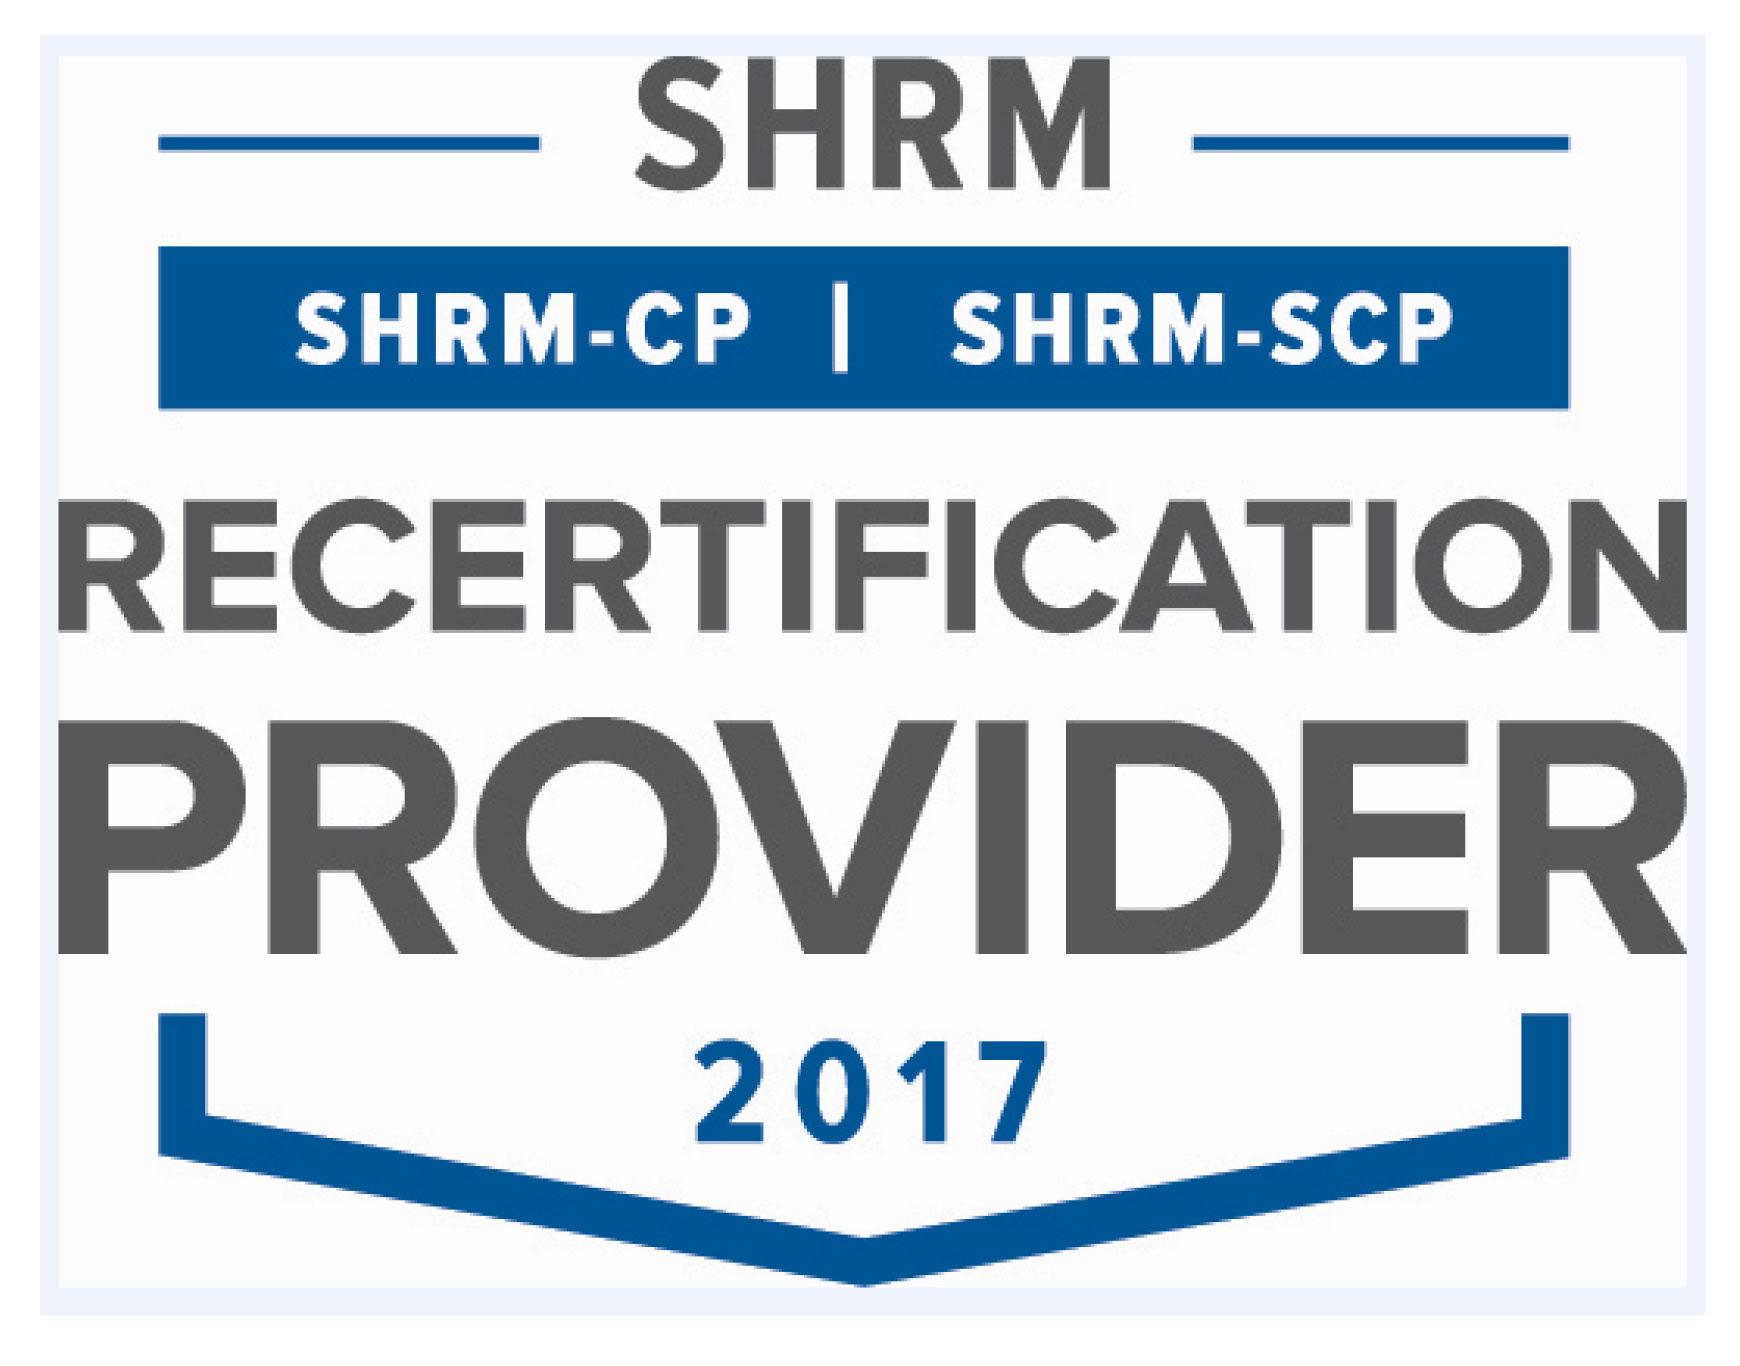 SHRM Recertification Provider 2017 logo